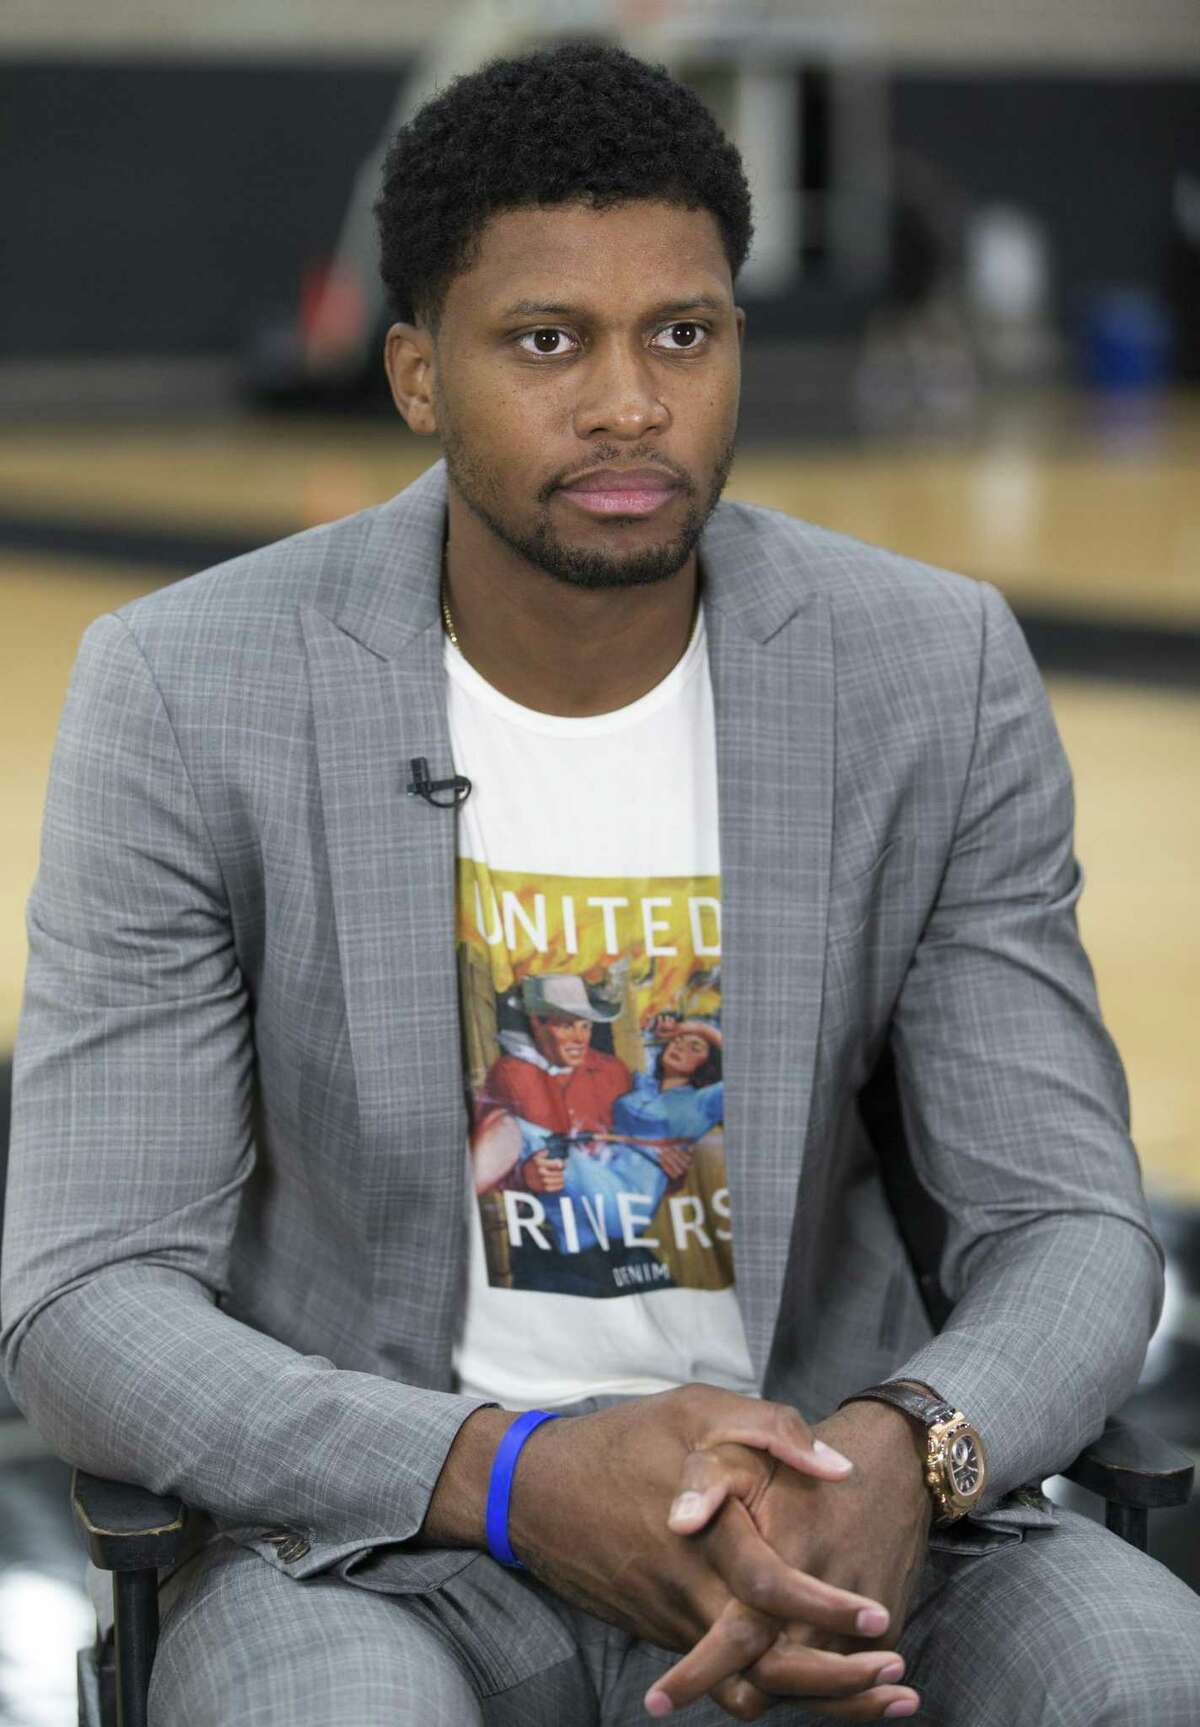 News Spurs player Rudy Gay speaks Wednesday, Sept. 13, 2017 to the media at the Spurs' practice facility.